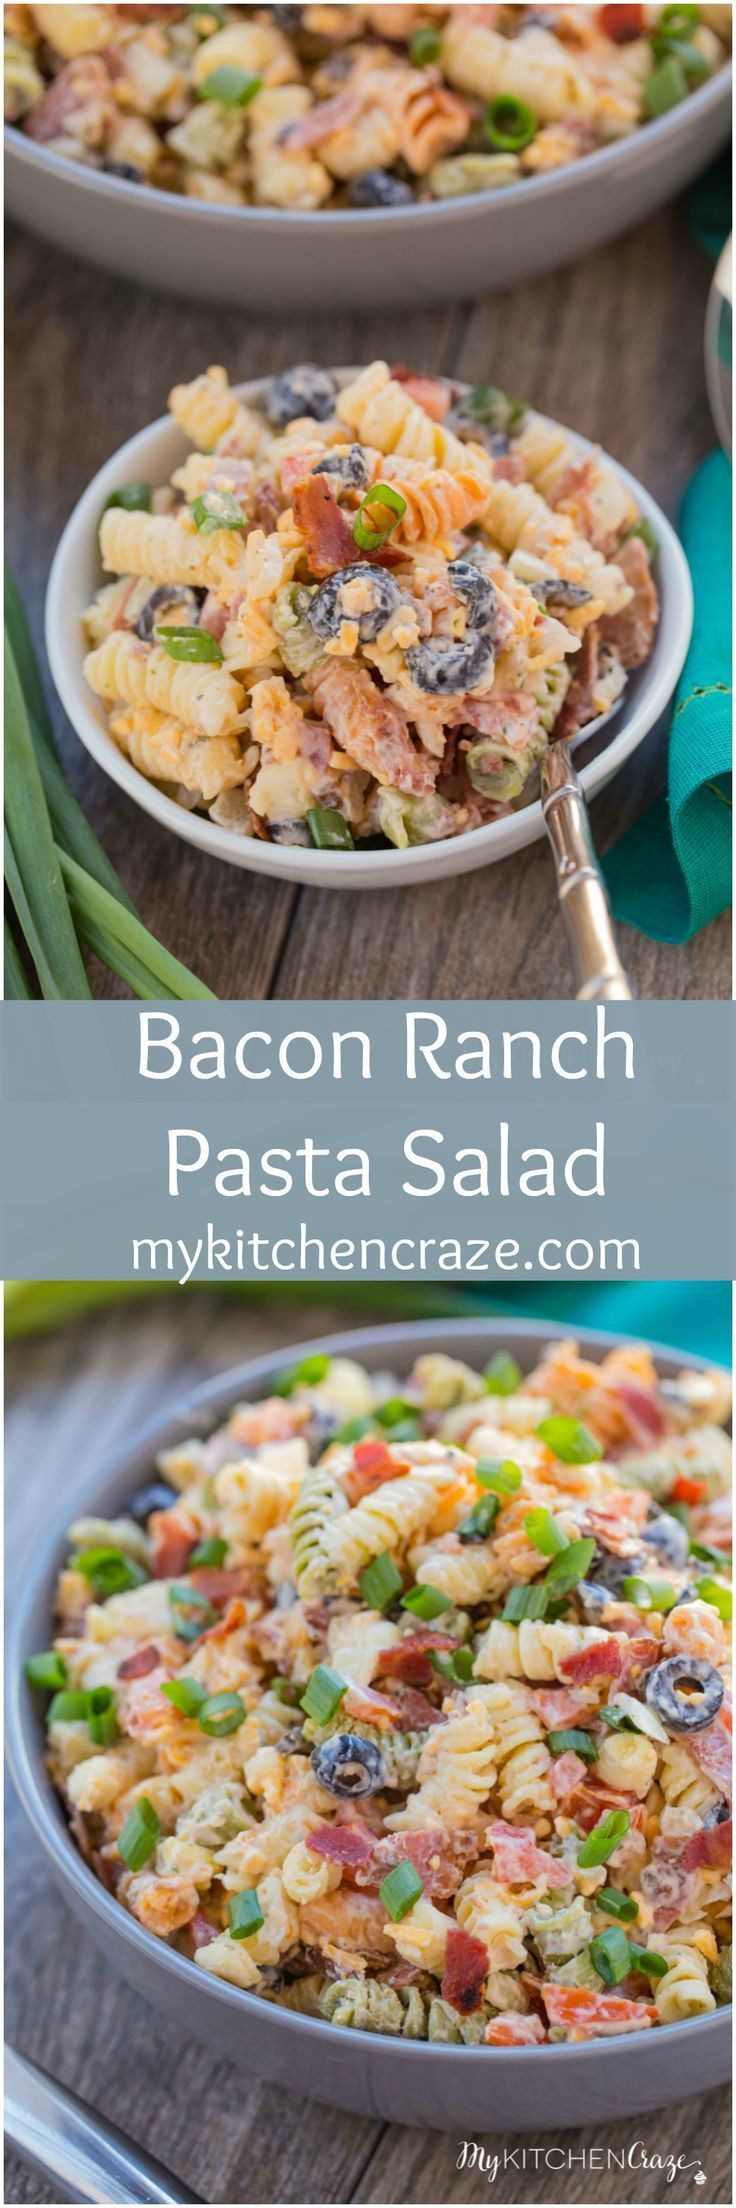 Bacon Ranch Pasta Salad ~ http://mykitchencraze.com ~ Enjoy crispy bacon tossed in a pasta ranch flavored salad. Perfect for a potluck or a special holiday.